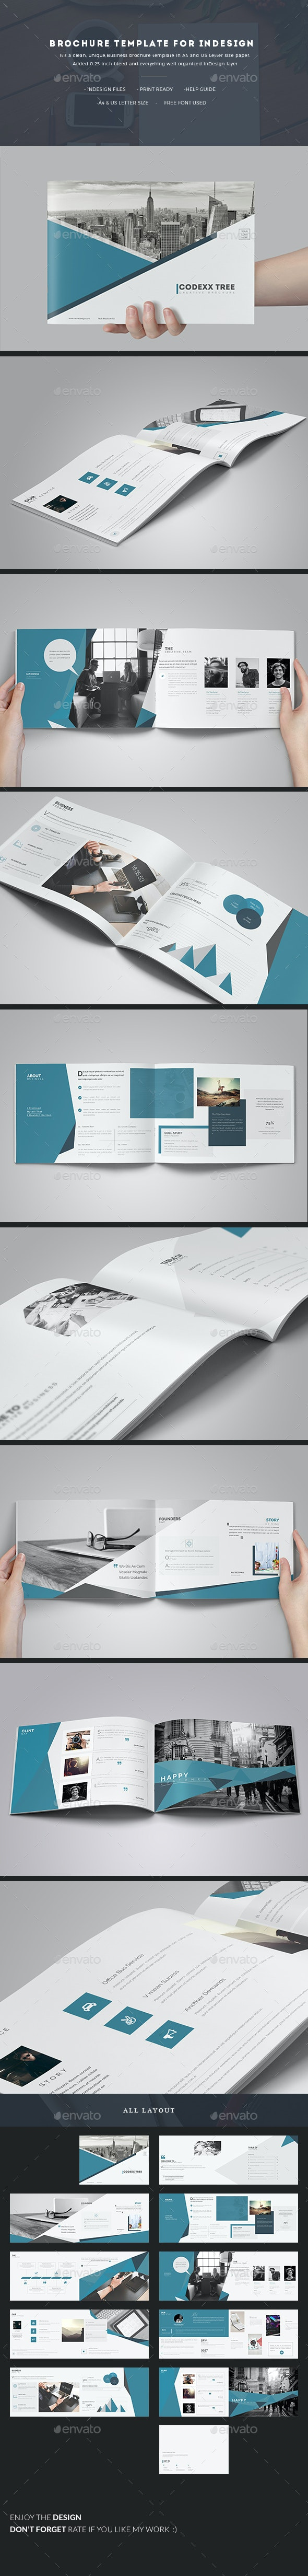 Brochure Template for InDesign - Corporate Brochures